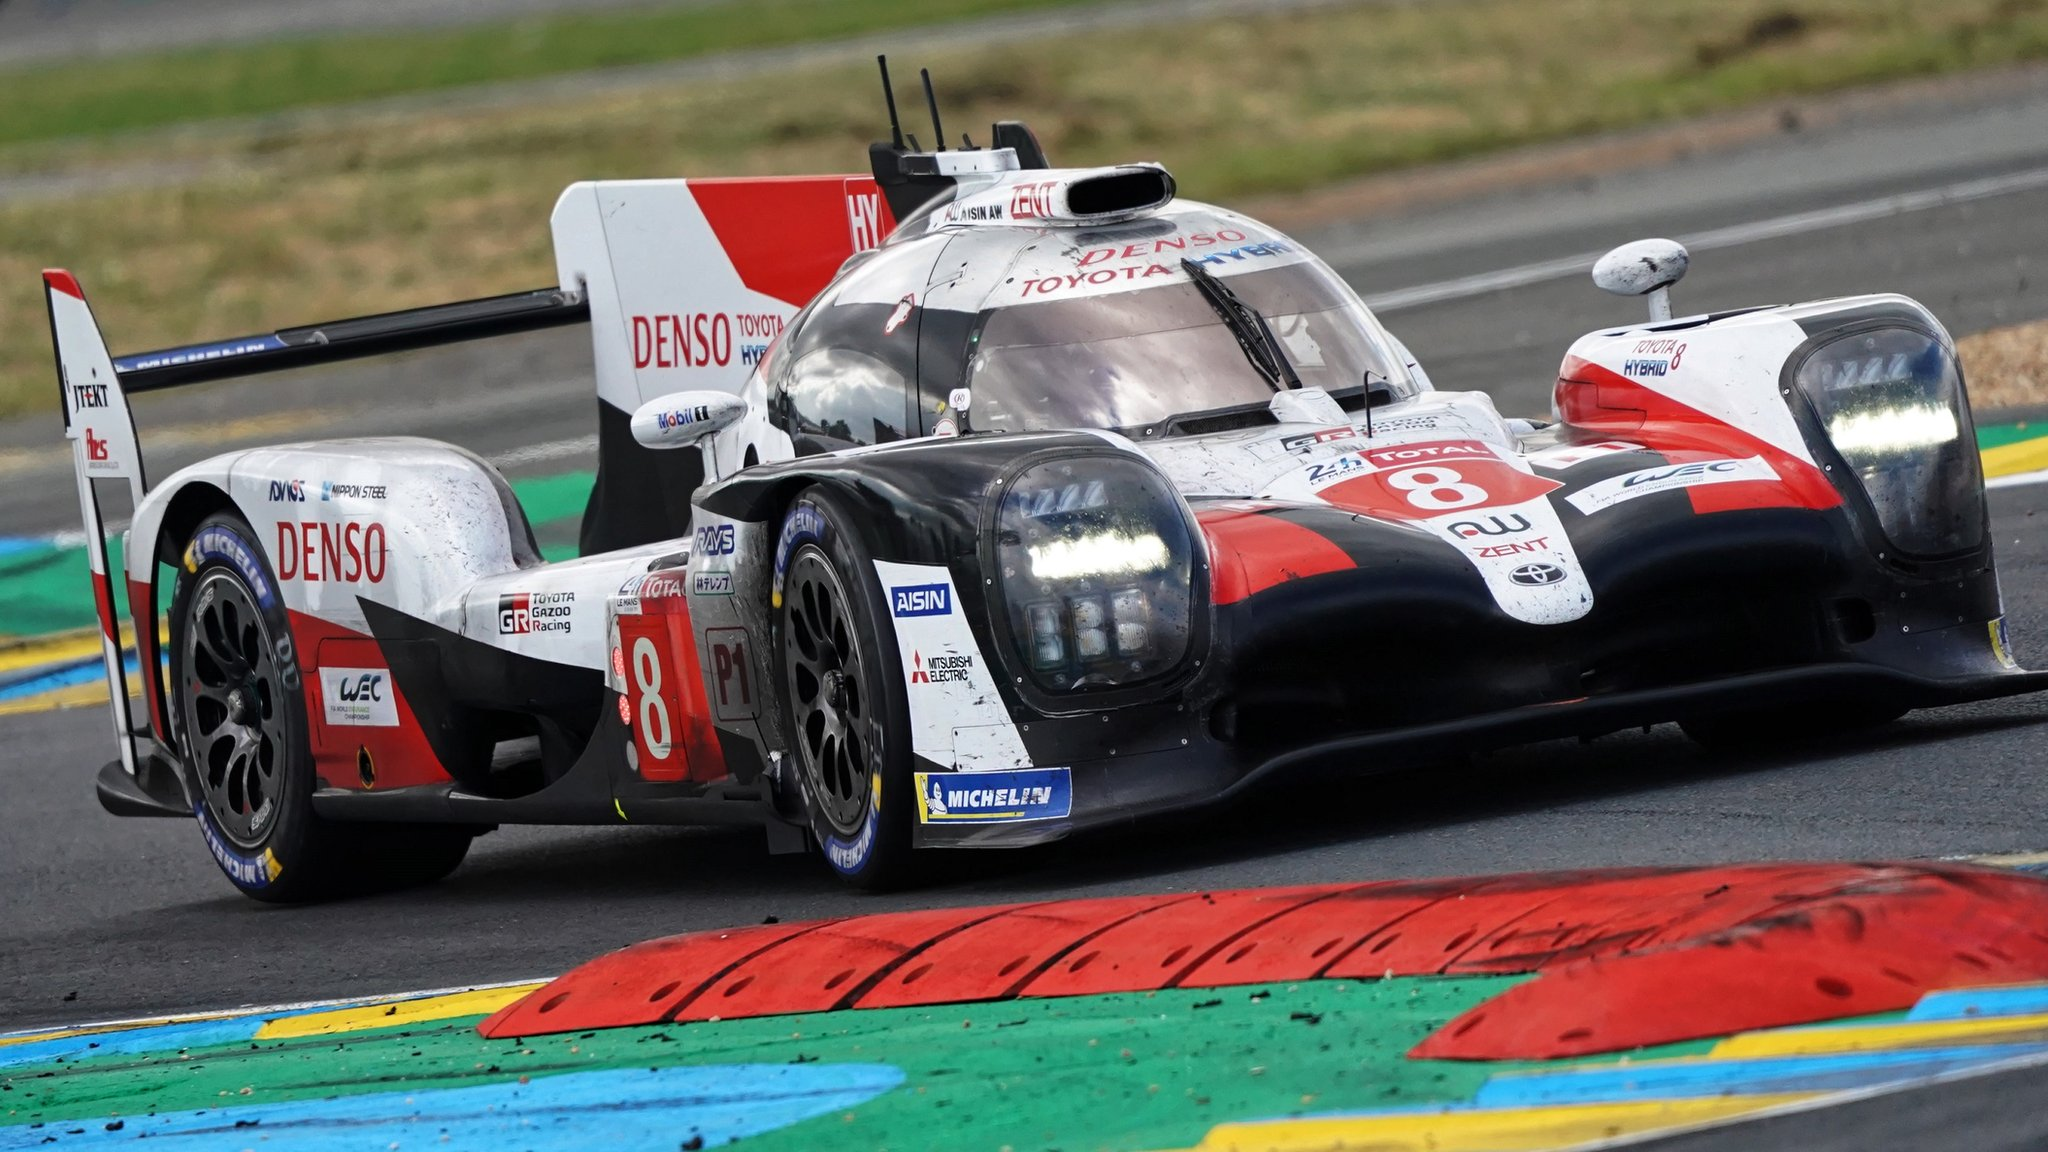 'Maybe we don't deserve it but we take it' - Alonso wins Le Mans for second time